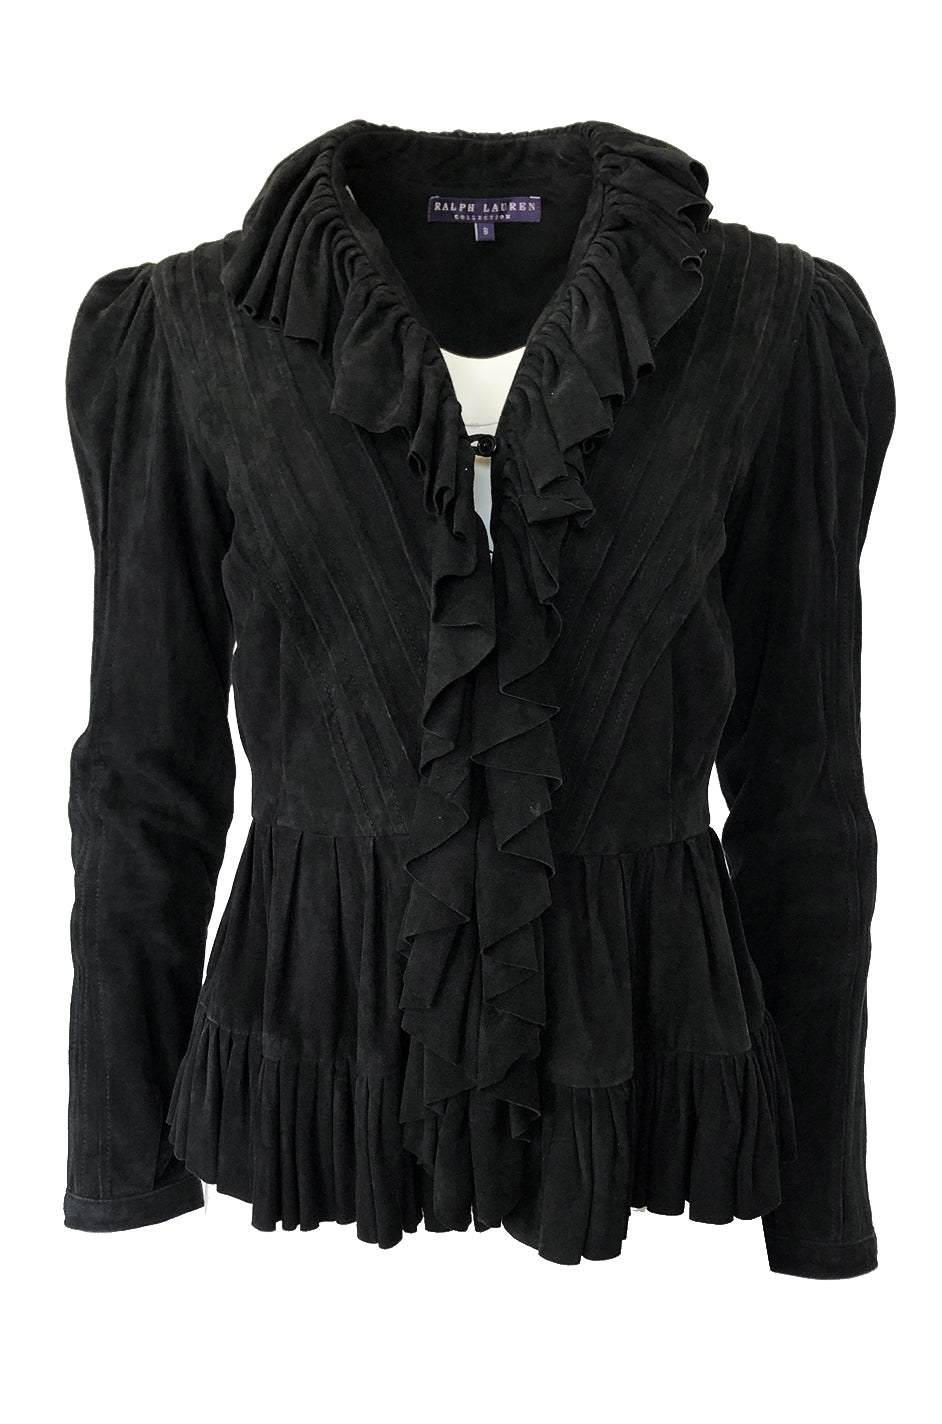 337dc24c3661f4 1990s Ralph Lauren Intricately Pleated & Seamed Black Suede Jacket